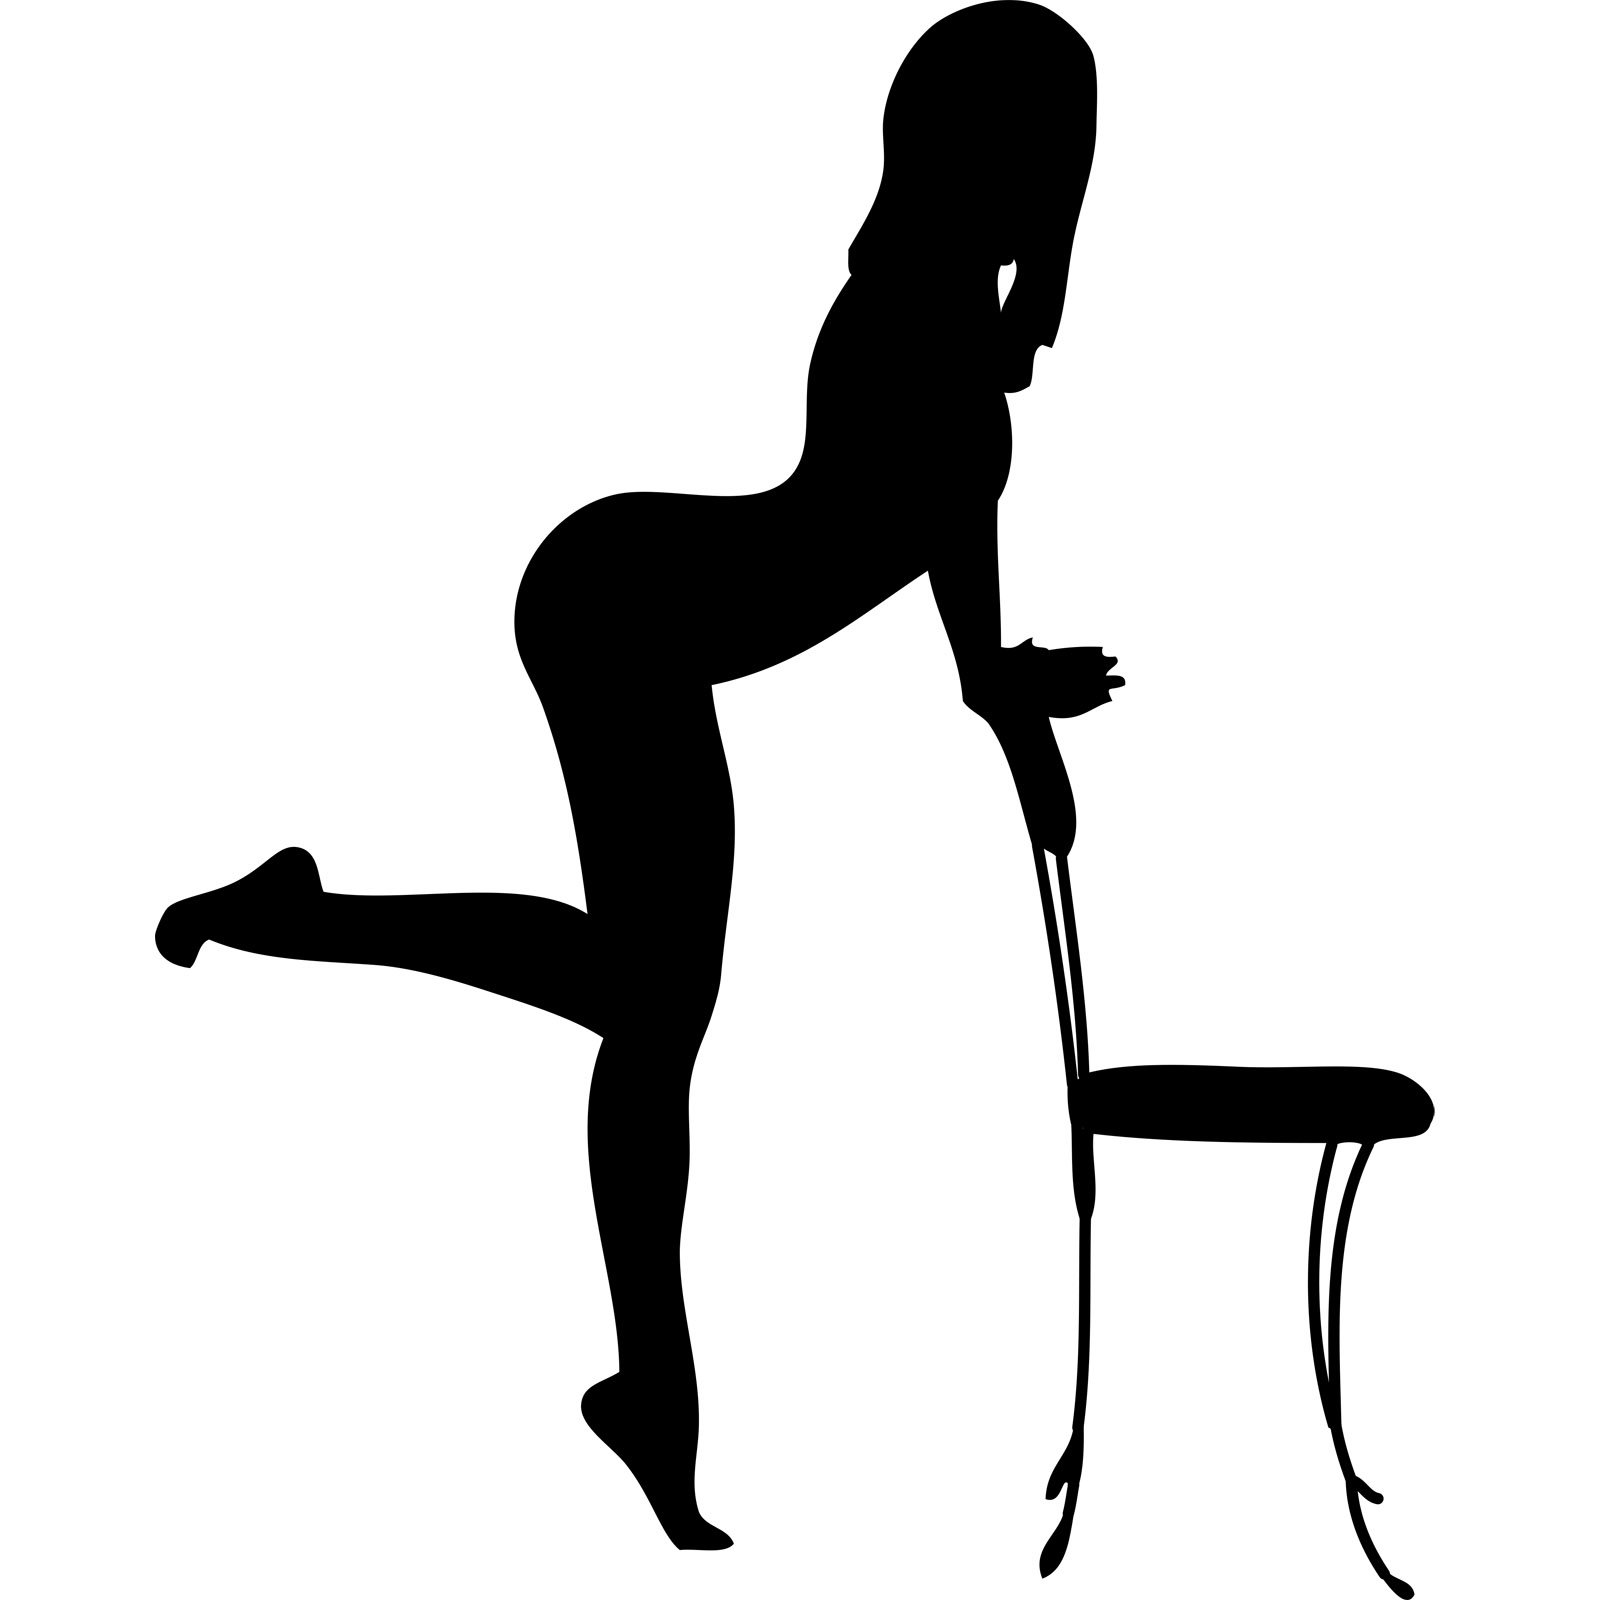 You Sexy lady silhouette images